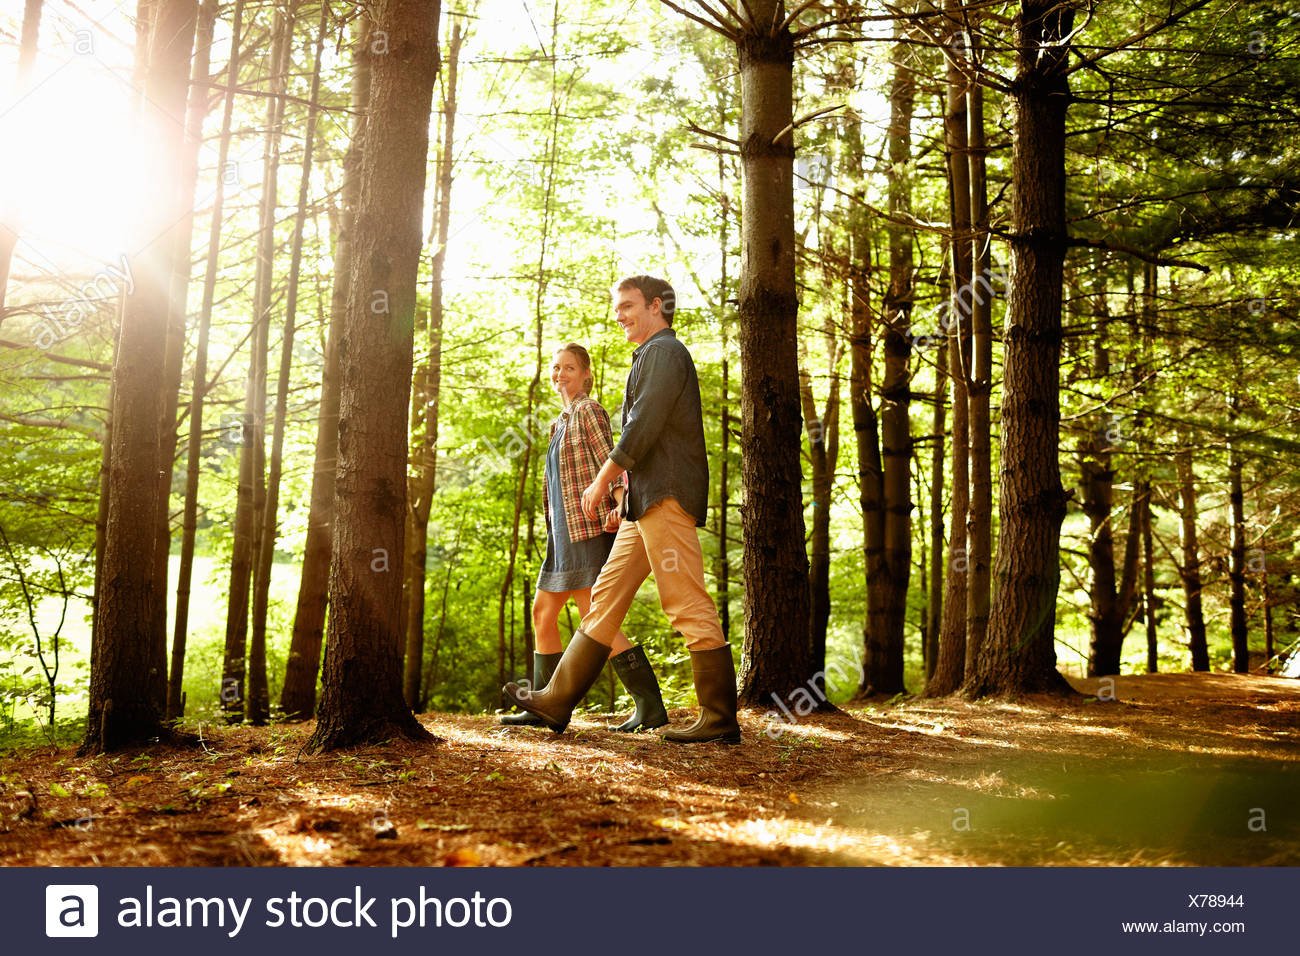 Three people, a family walking in woodland in the late afternoon. - Stock Image